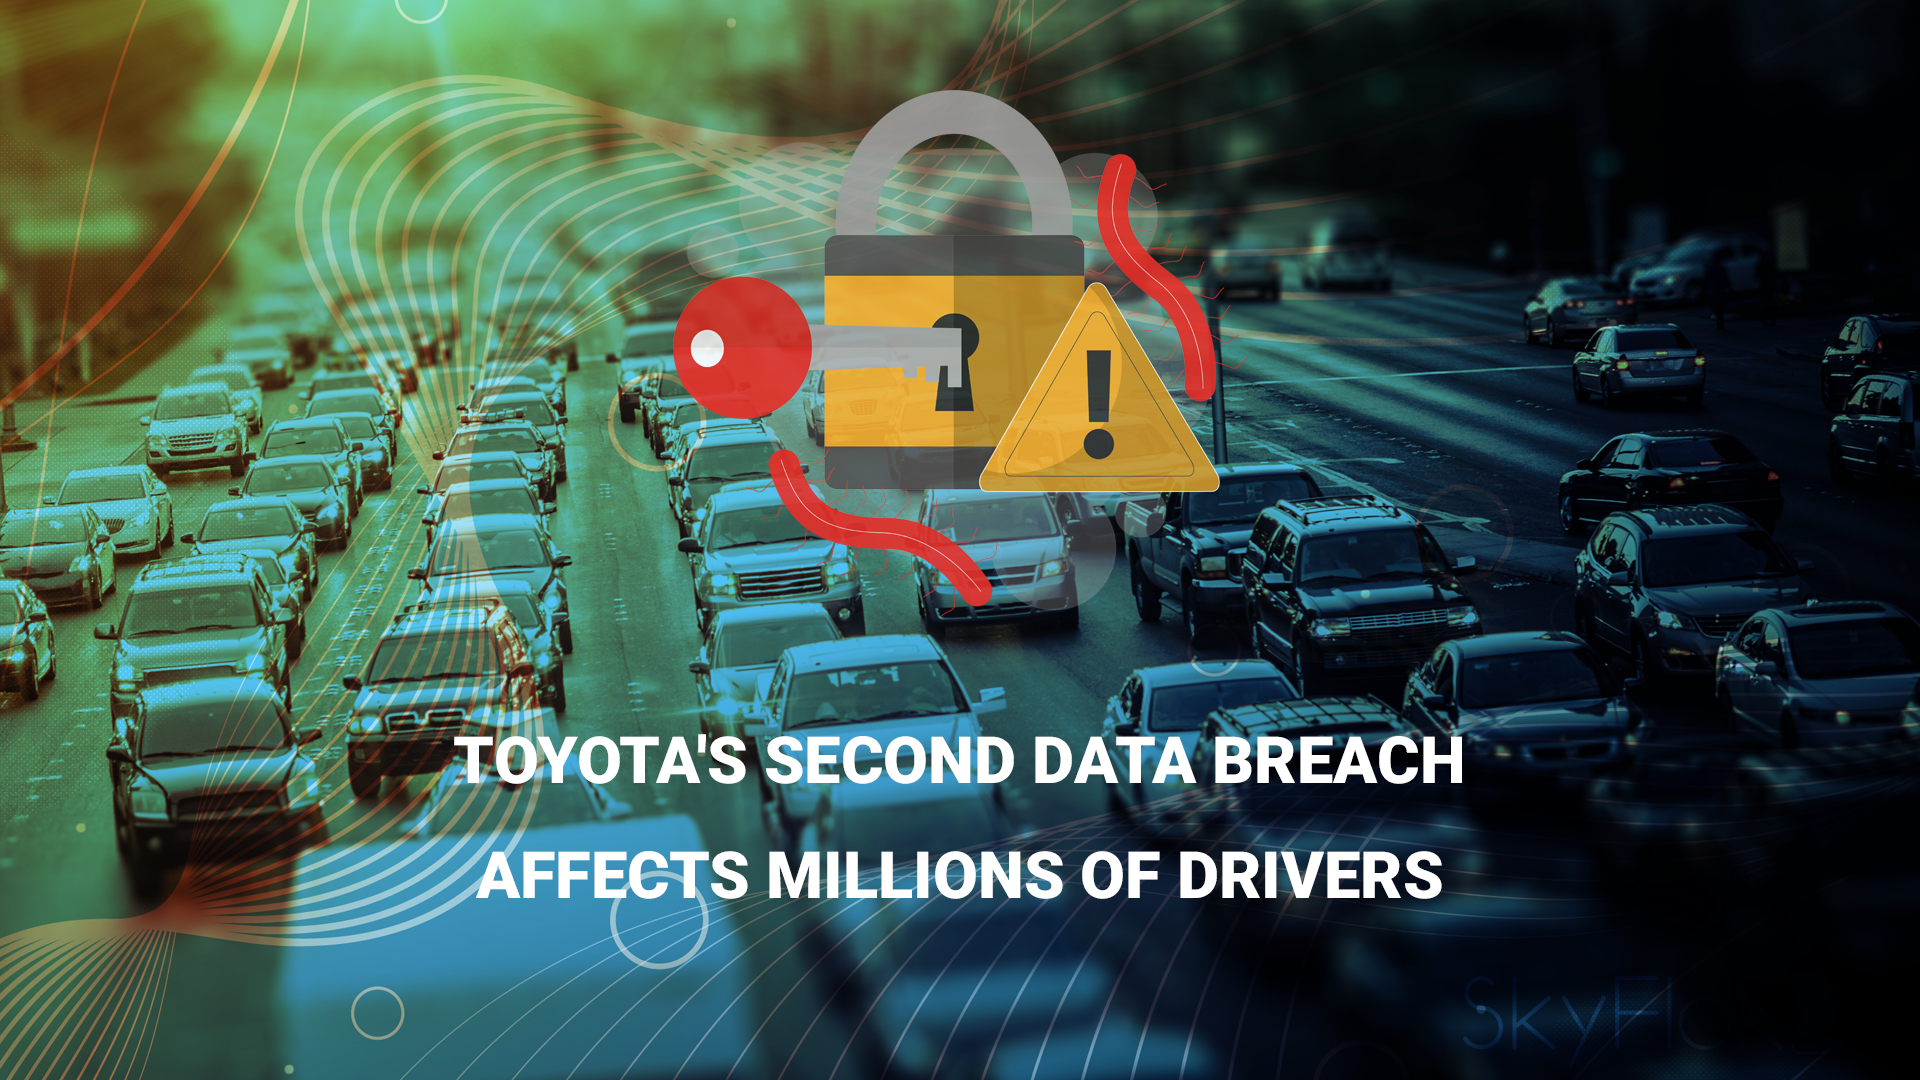 Toyota's Second Data Breach Affects Millions Of Drivers